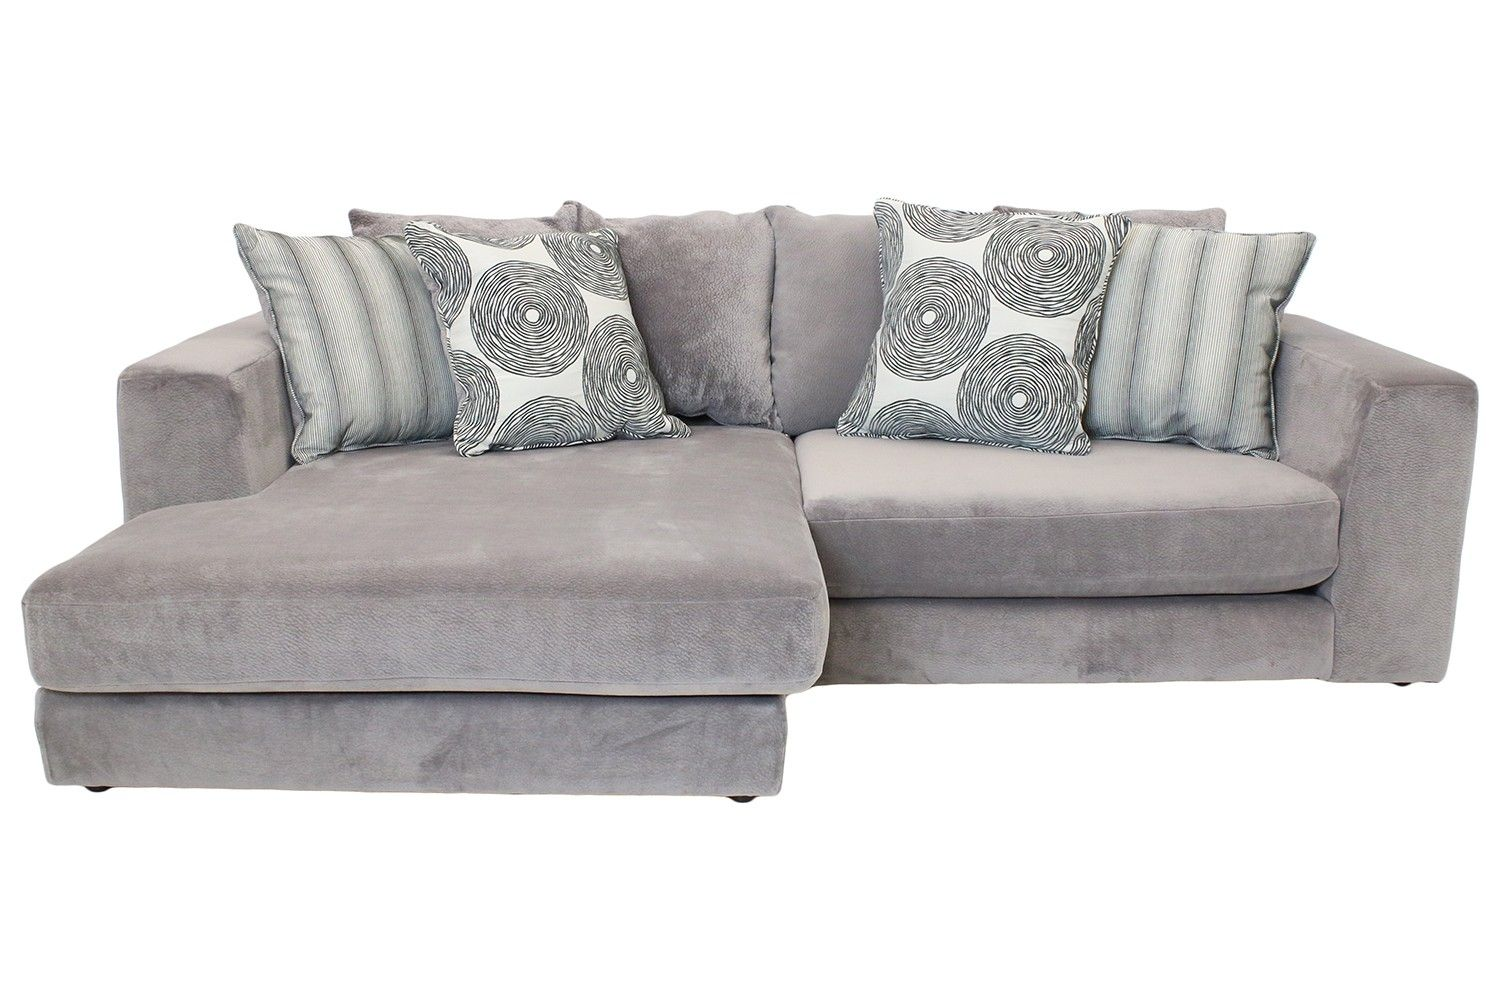 Cloud Graphite Sectional - Sectionals - Living Room | Mor Furniture for Less  sc 1 st  Pinterest : sectionals for less - Sectionals, Sofas & Couches